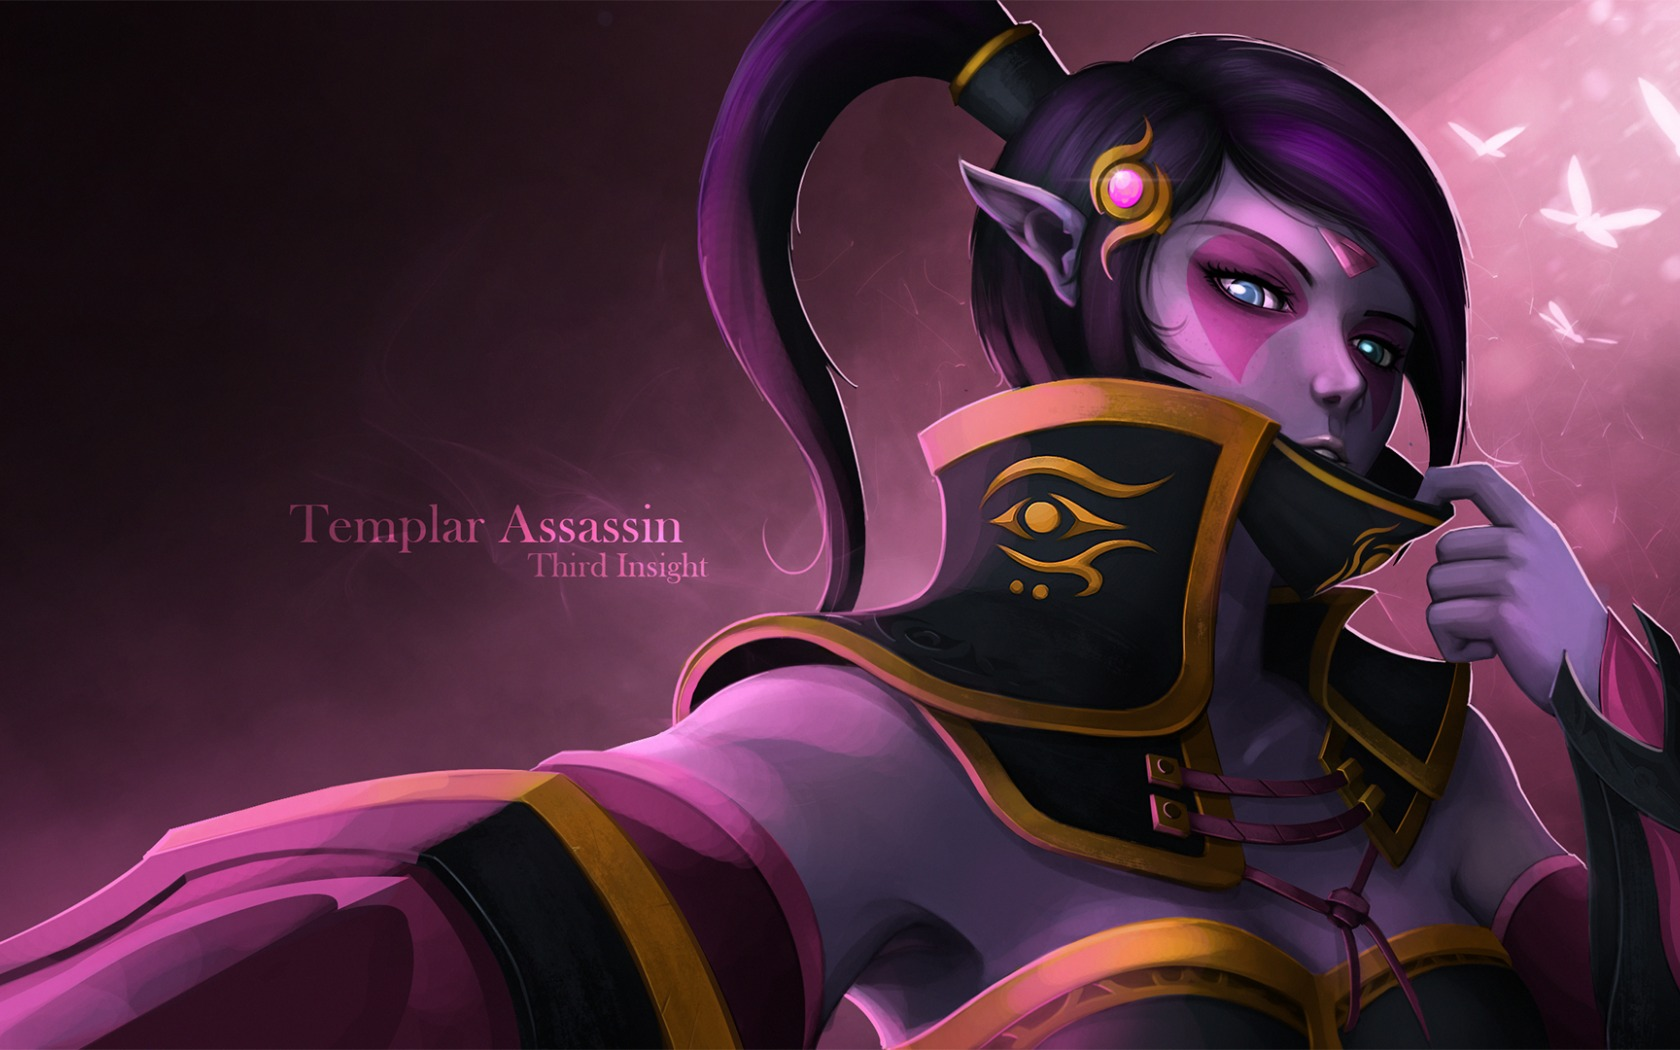 Templar Assassin wallpapers free